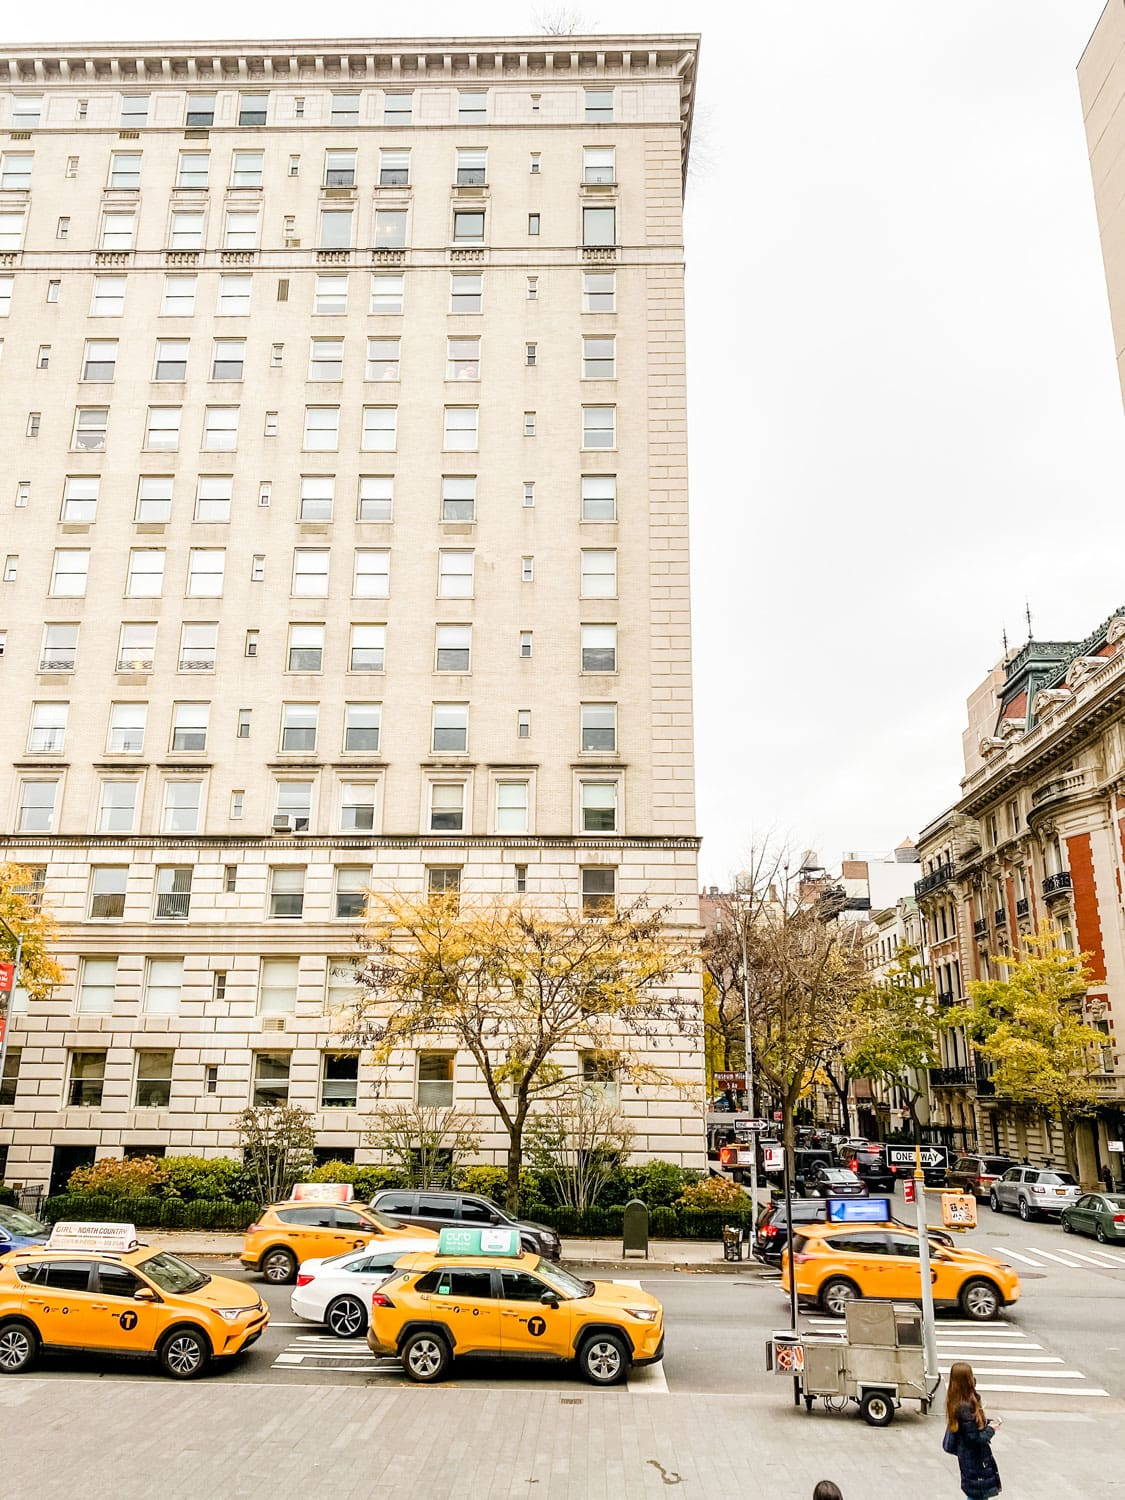 limestone building with taxis in front in nyc